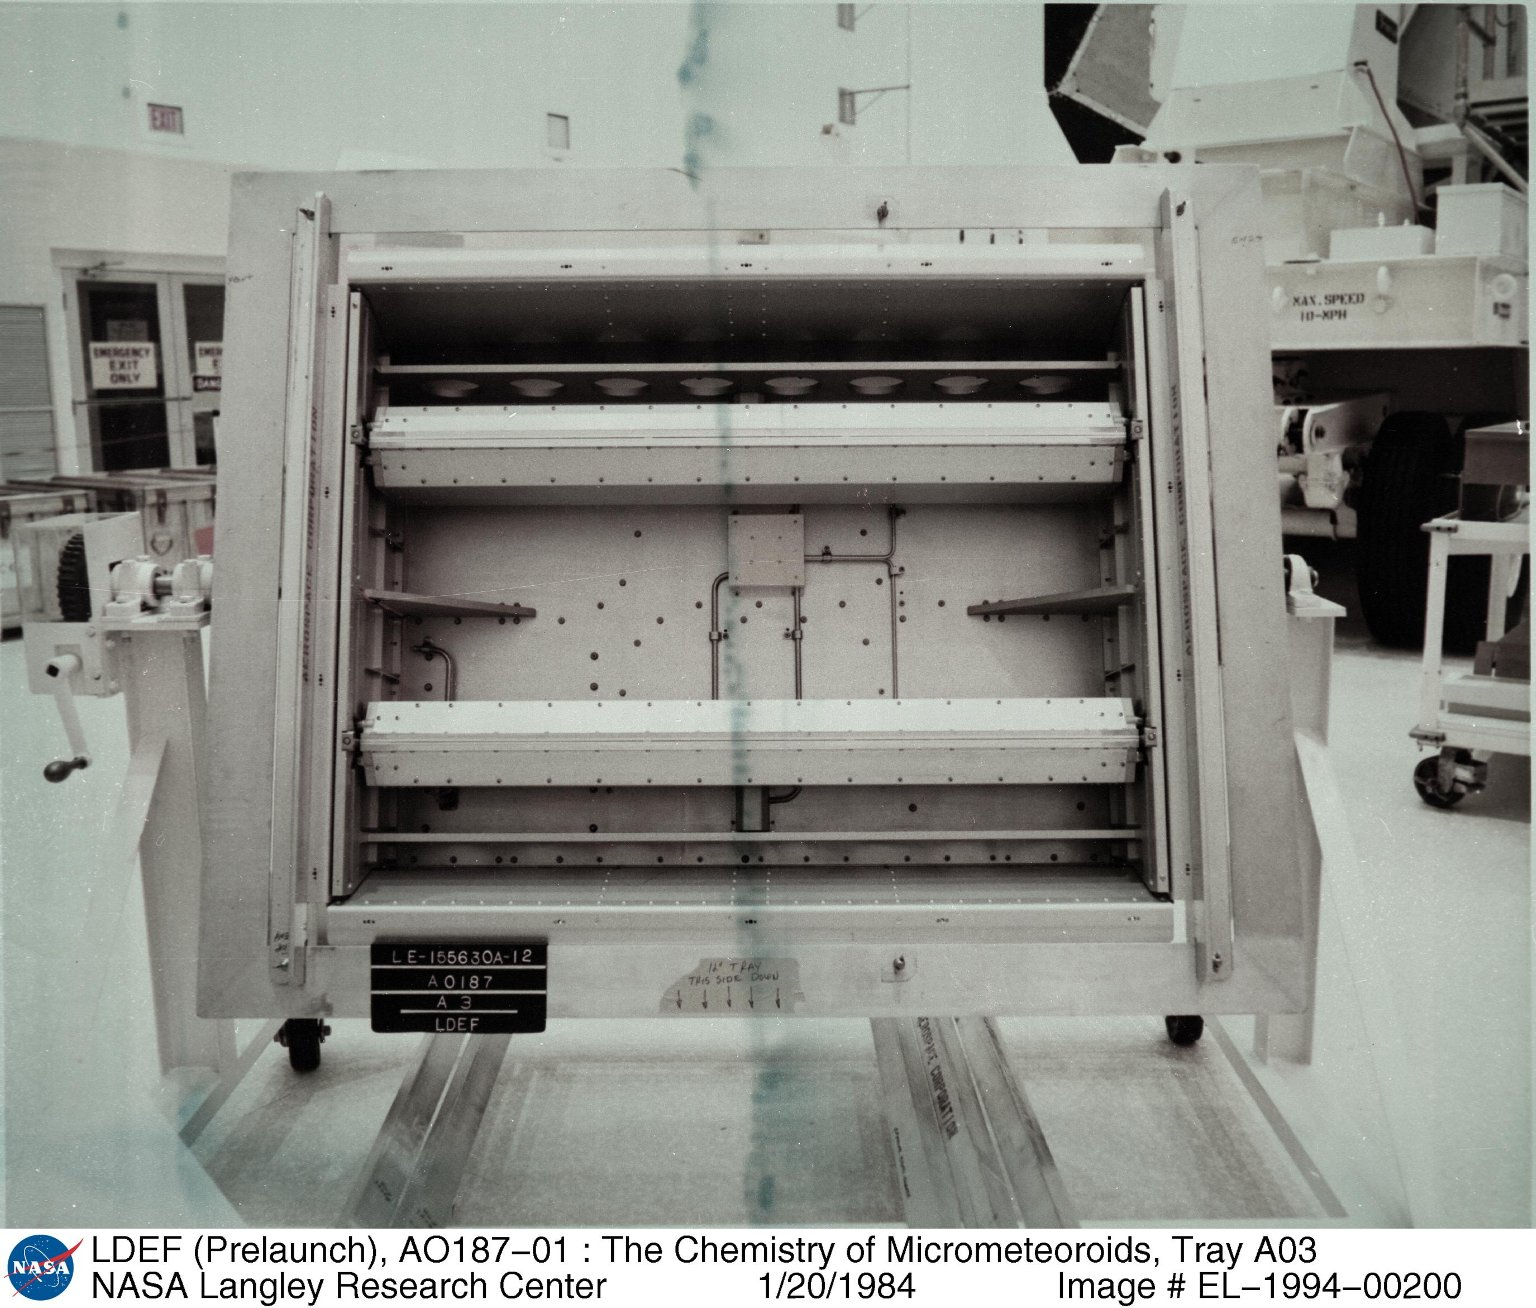 LDEF (Prelaunch), AO187-01 : The Chemistry of Micrometeoroids, Tray A03